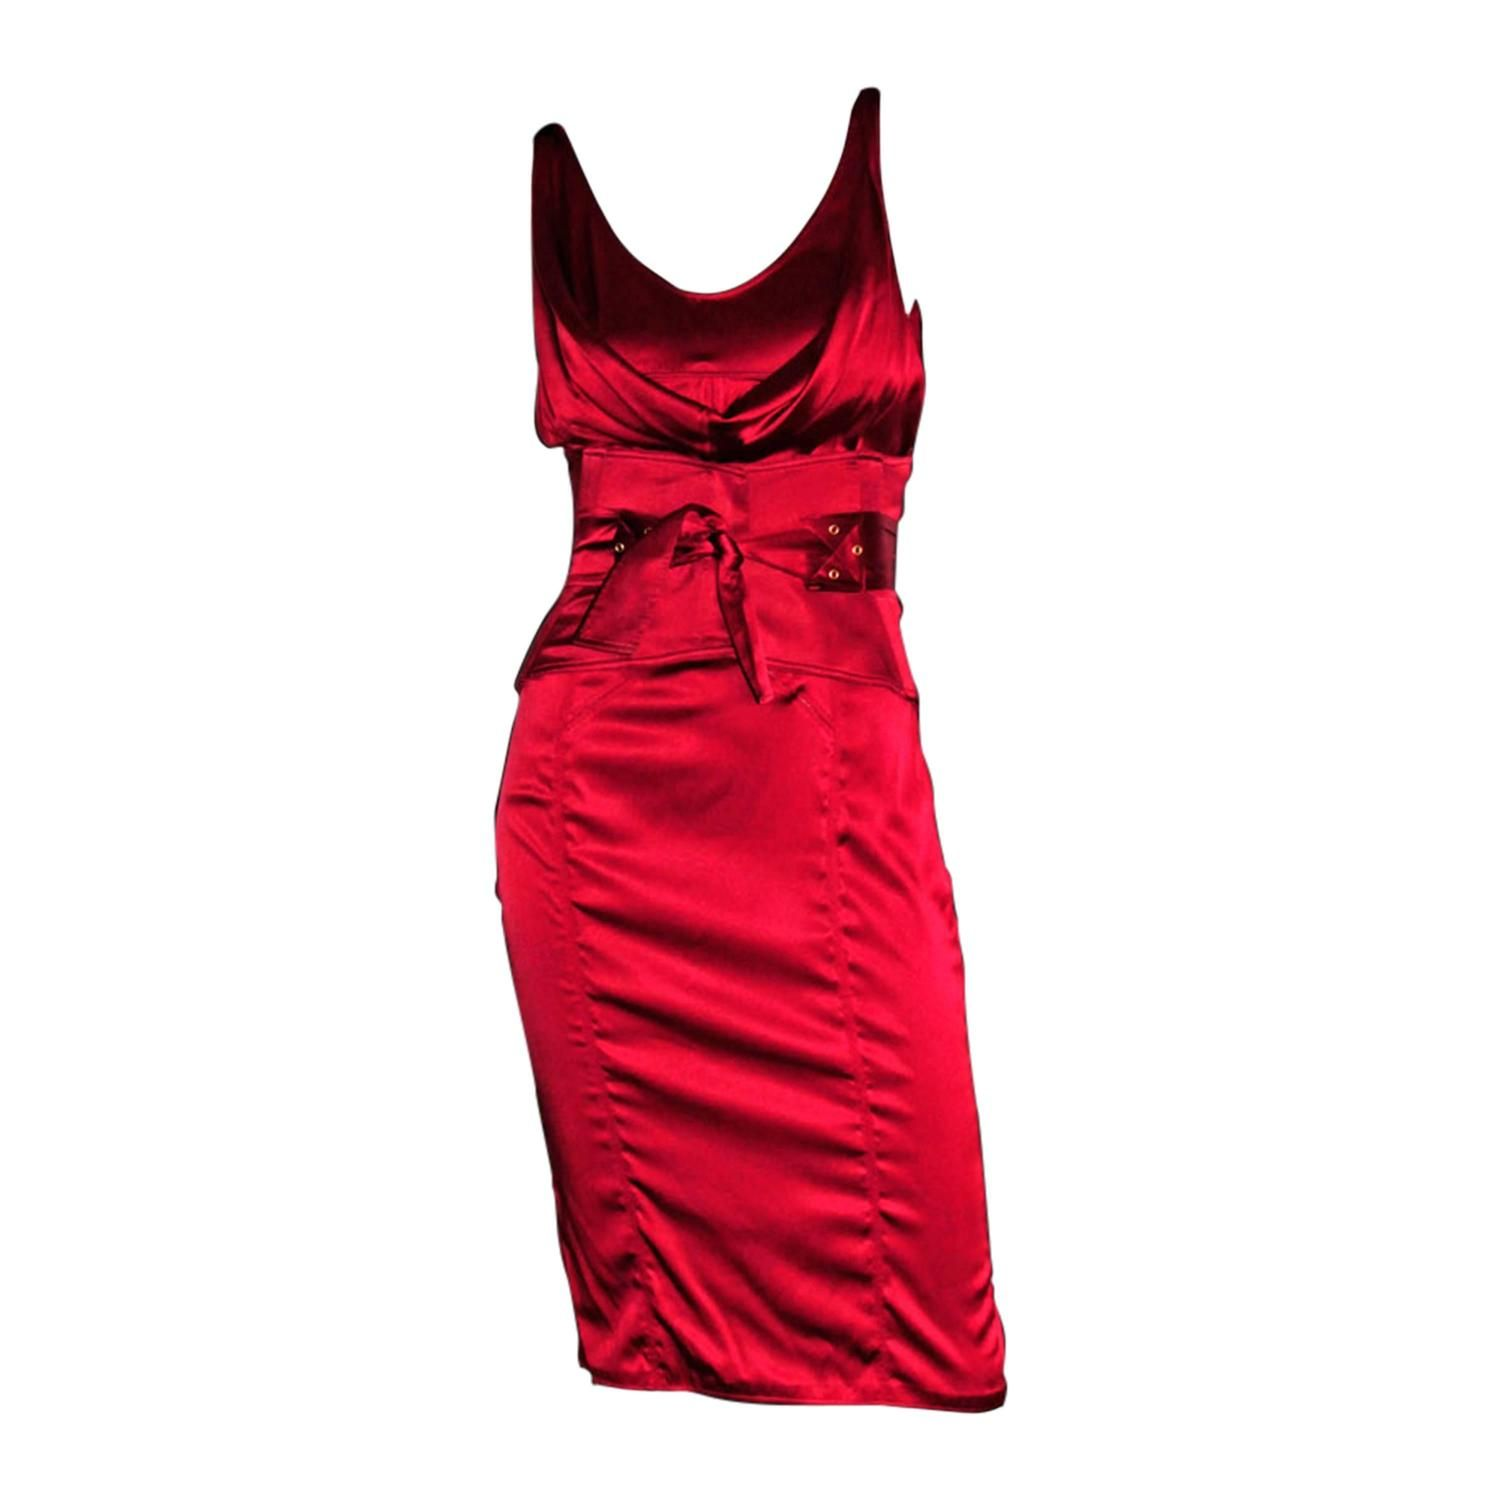 42d7eedc9f That Incredible Tom Ford For Gucci FW 2003 Cherry Red Silk Corset Dress    Belt